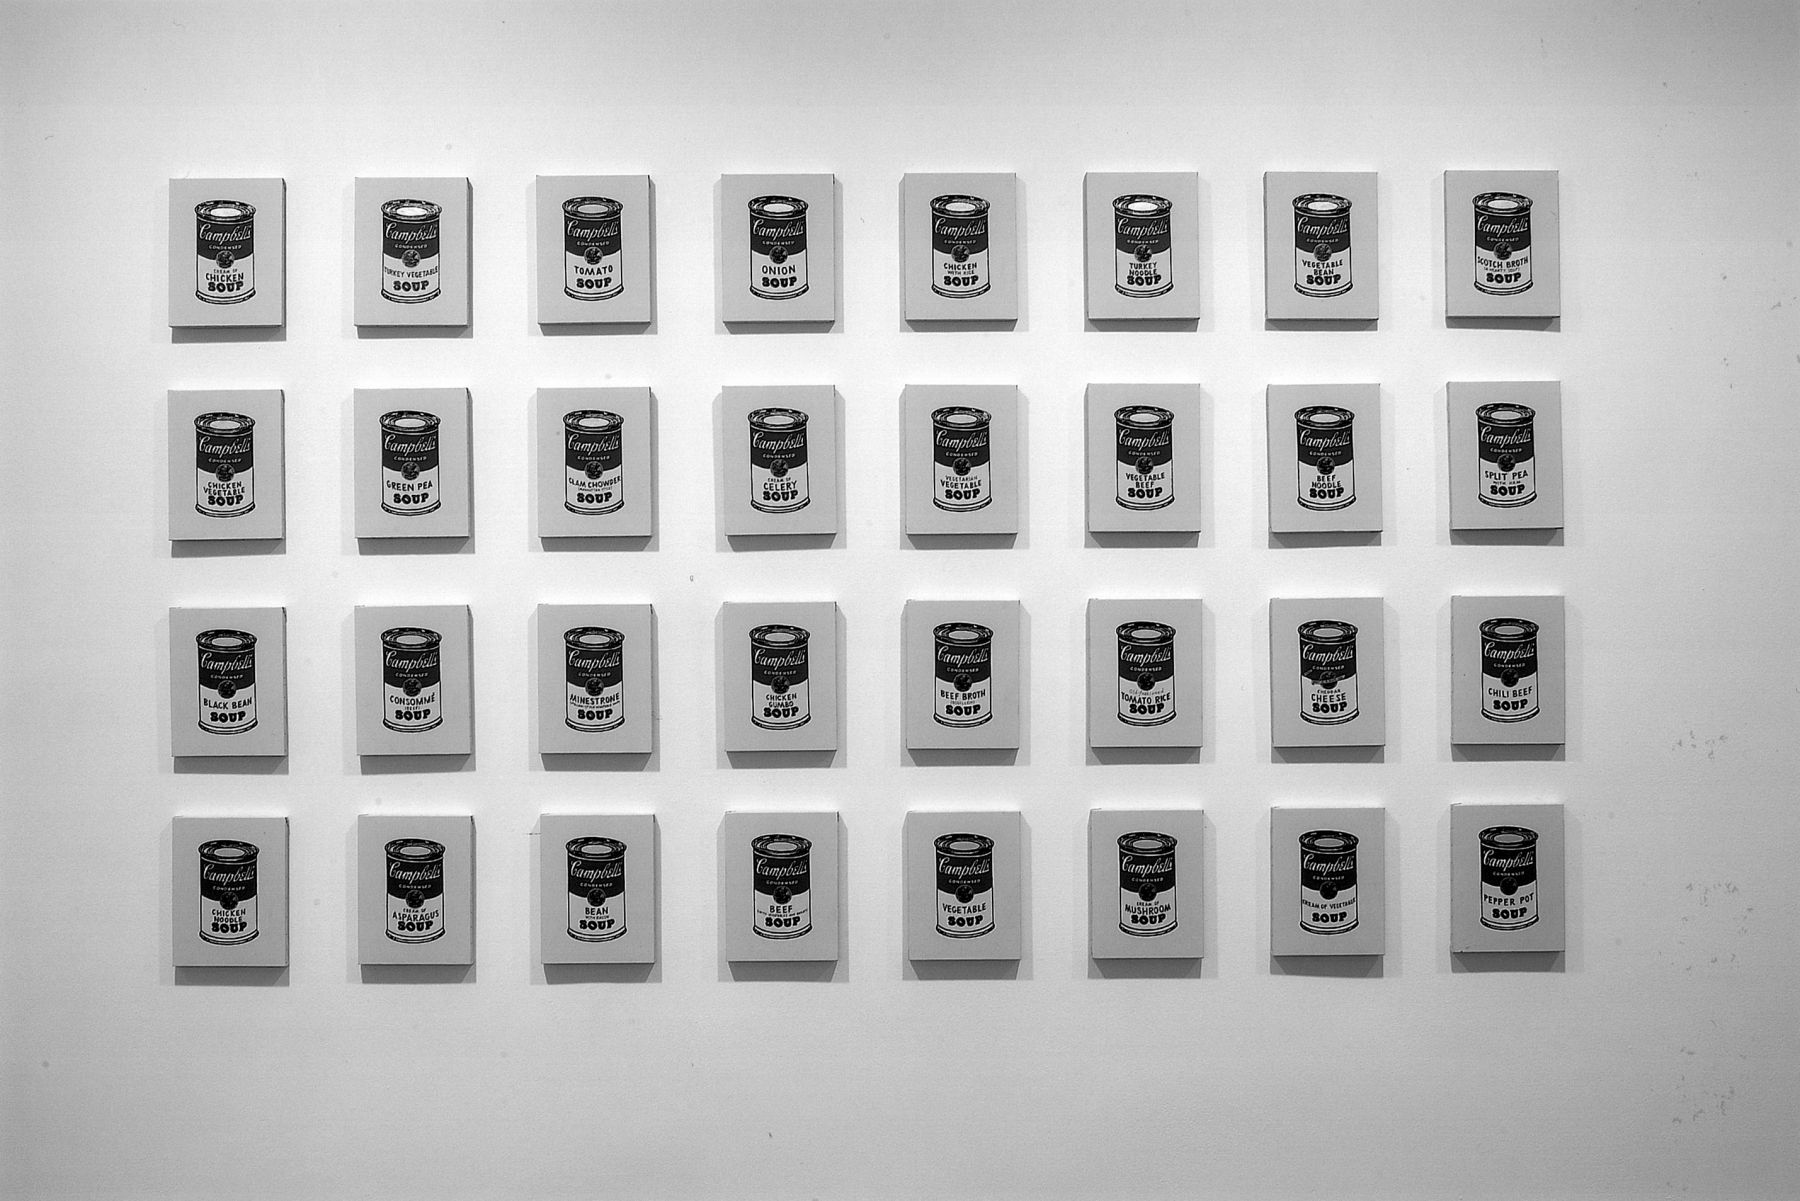 Installation views, Richard Pettibone: Sixty-four Campbell's Soup Cans, 18 EAST 77